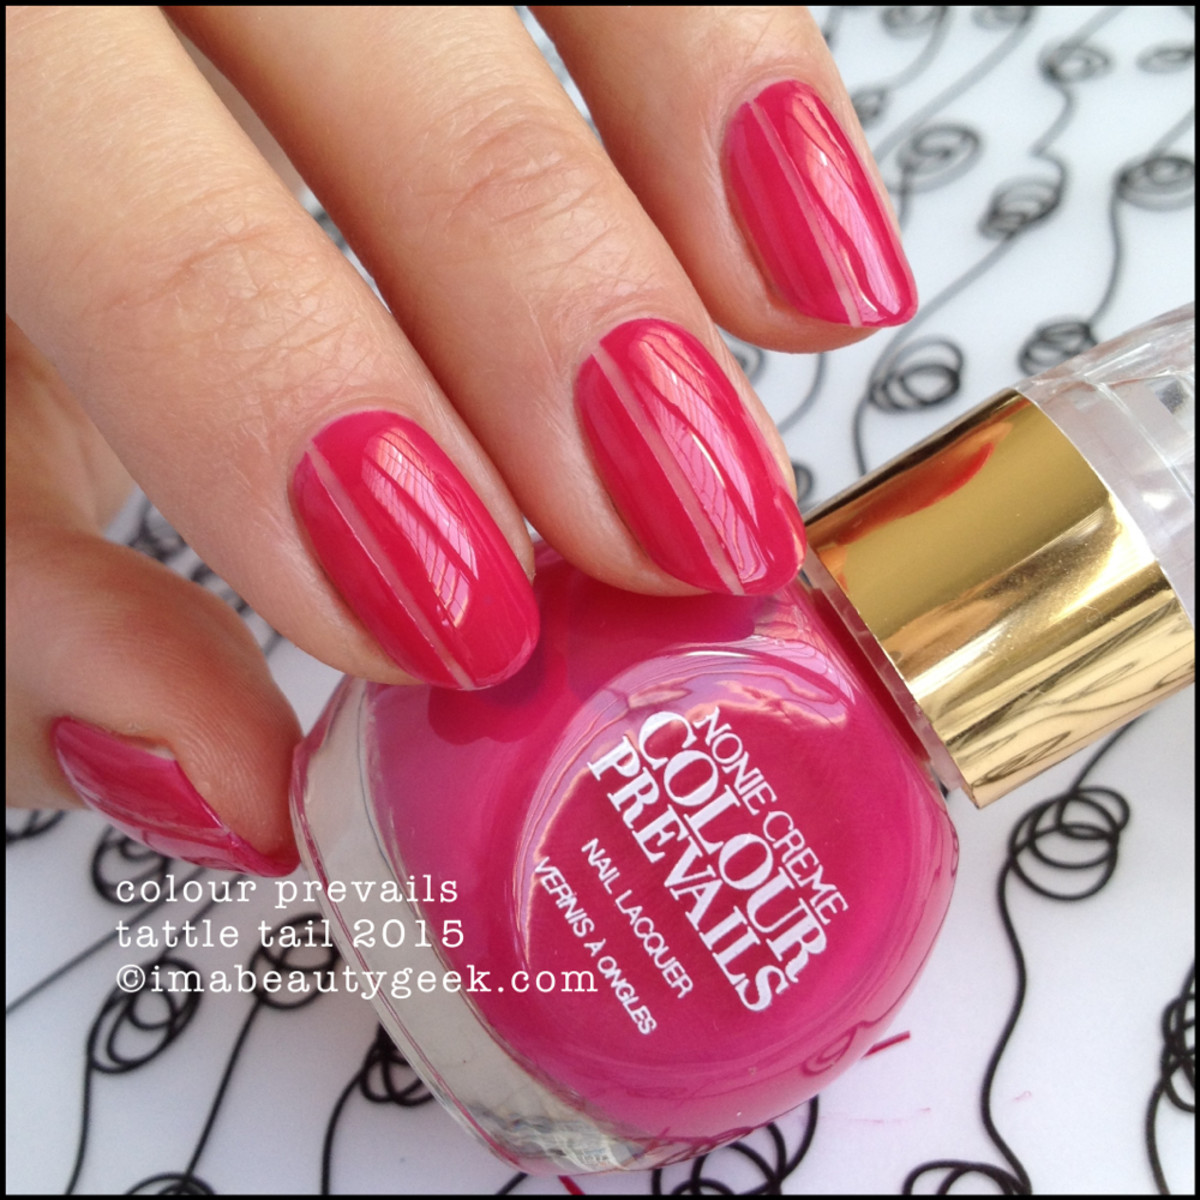 Colour Prevails Tattle Tail nail polish by Nonie Creme